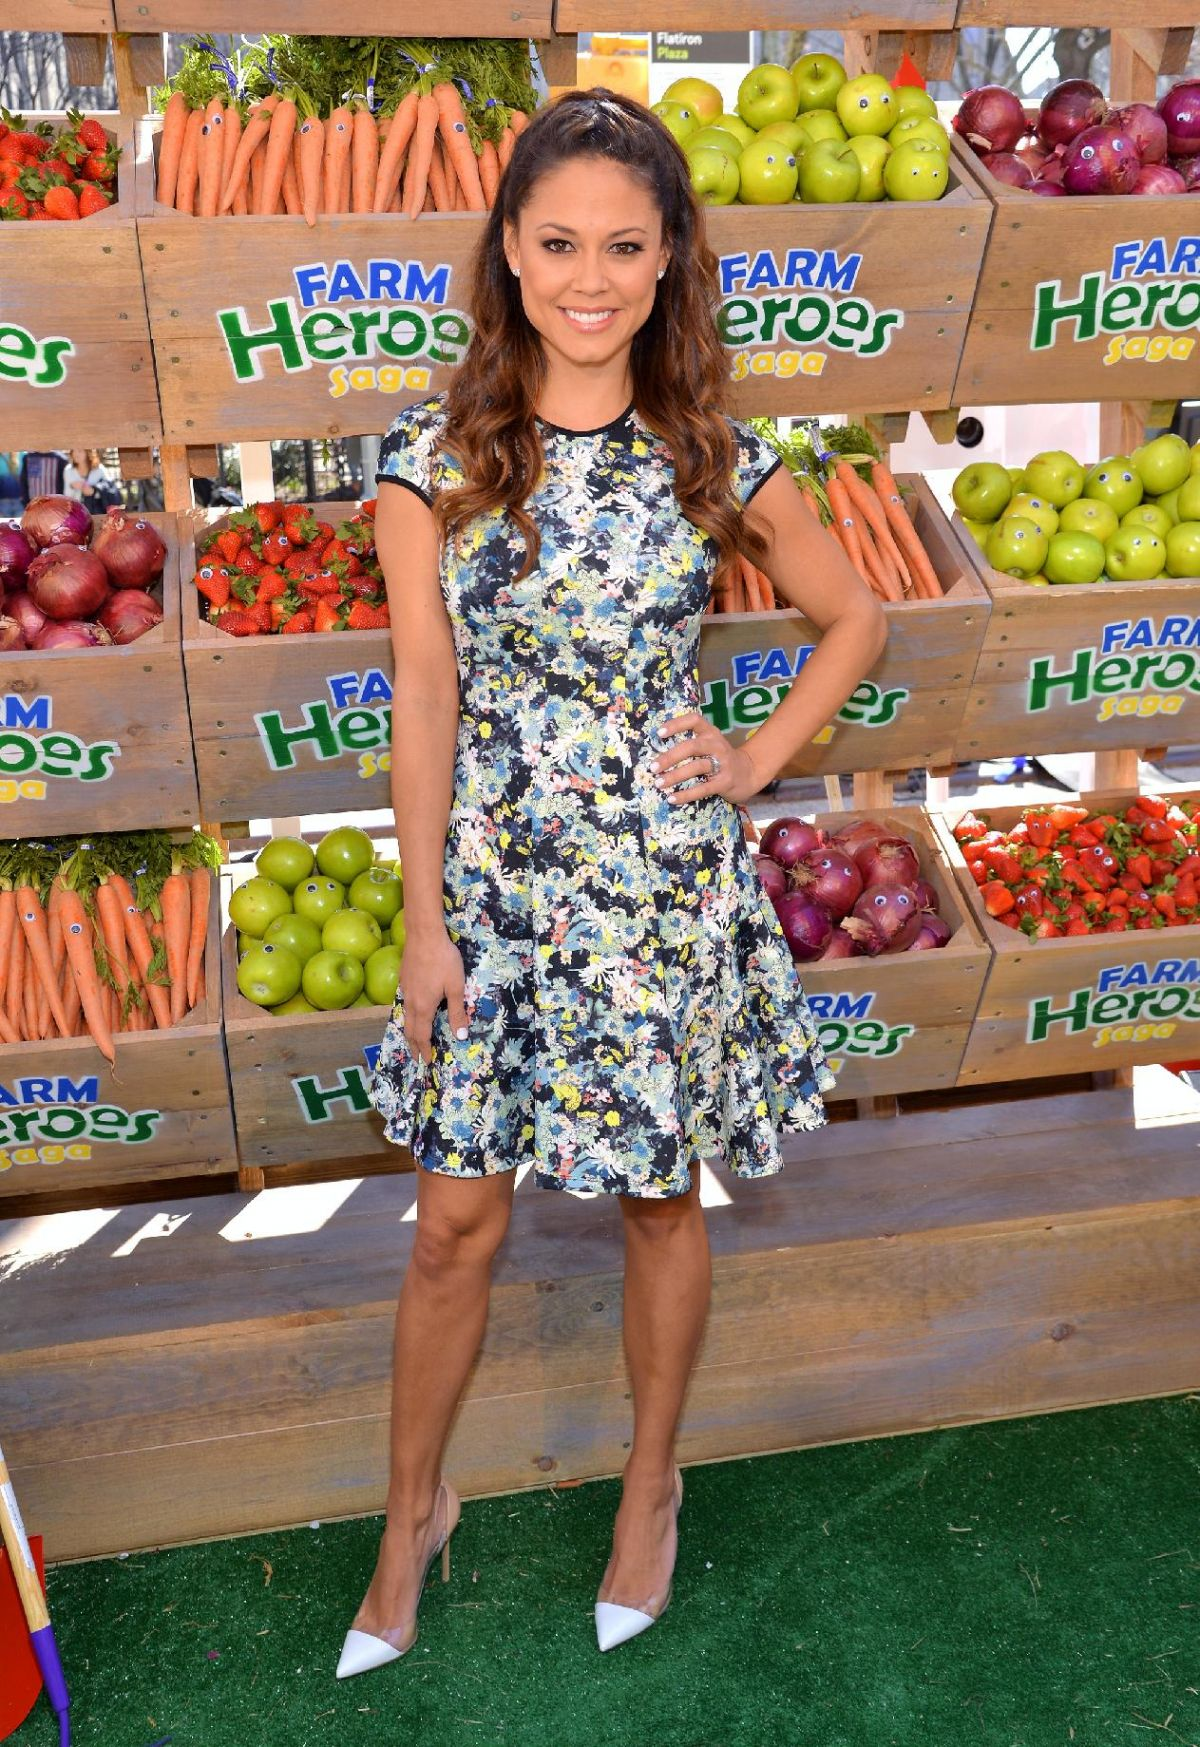 VANESSA MINNILLO at Beafarmhero Spring Campaign in Ner York